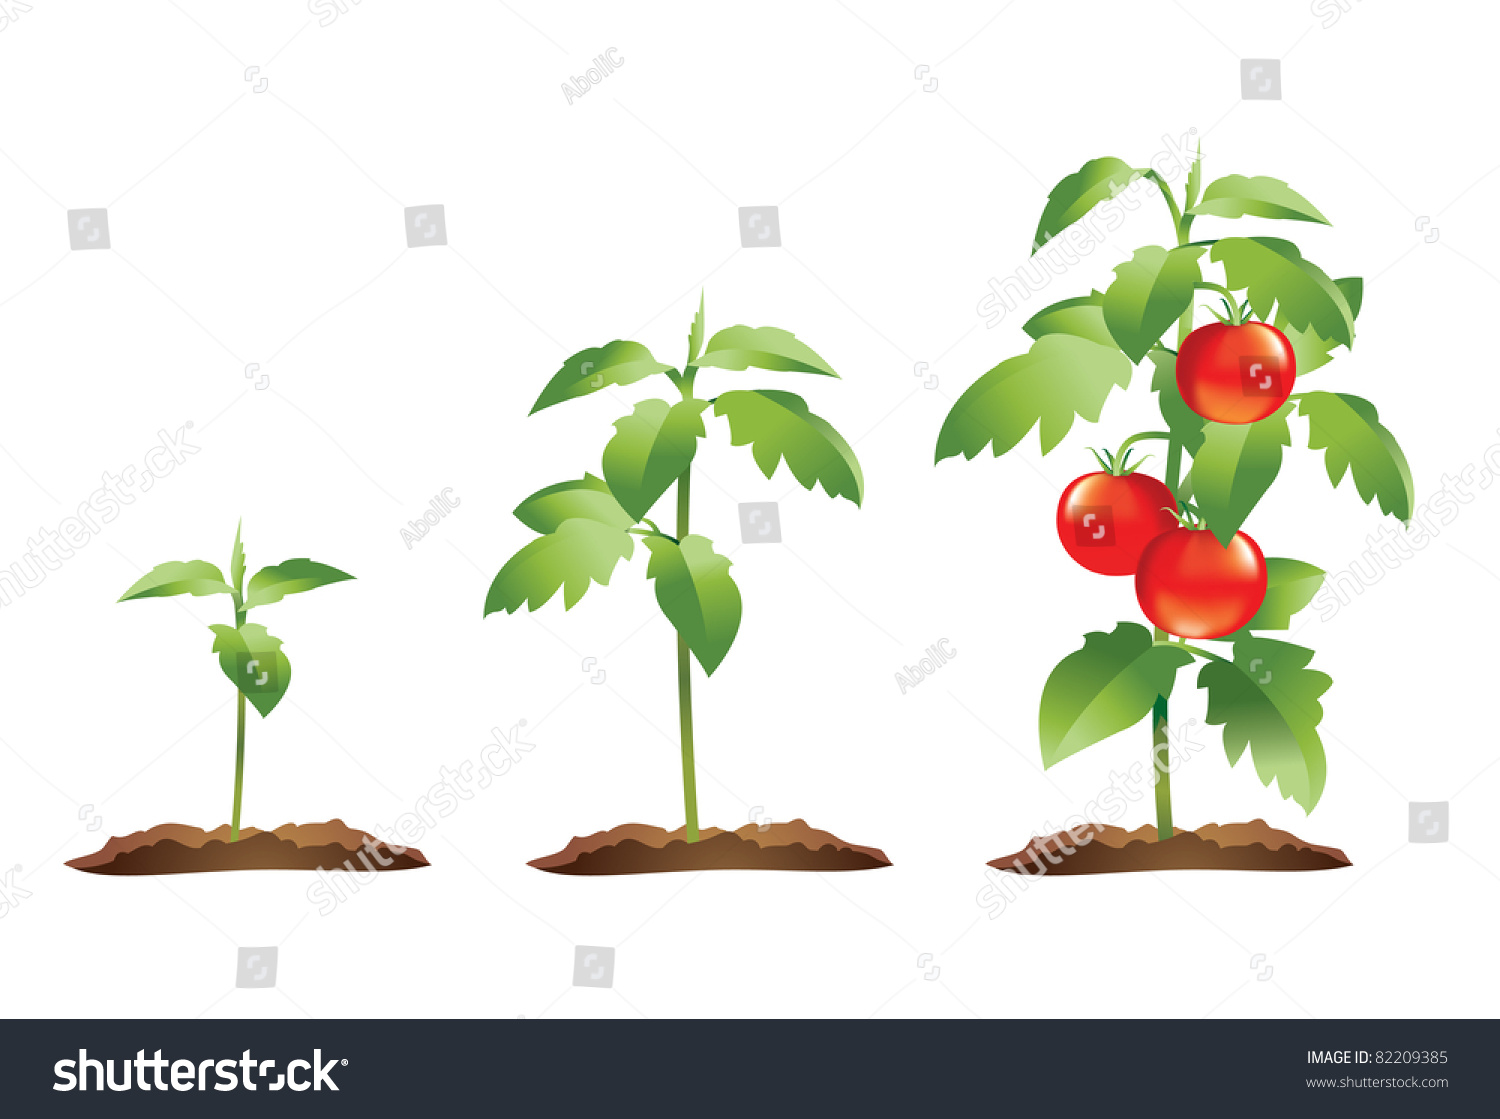 Tomato Plant Growth Cycle Stock Vector